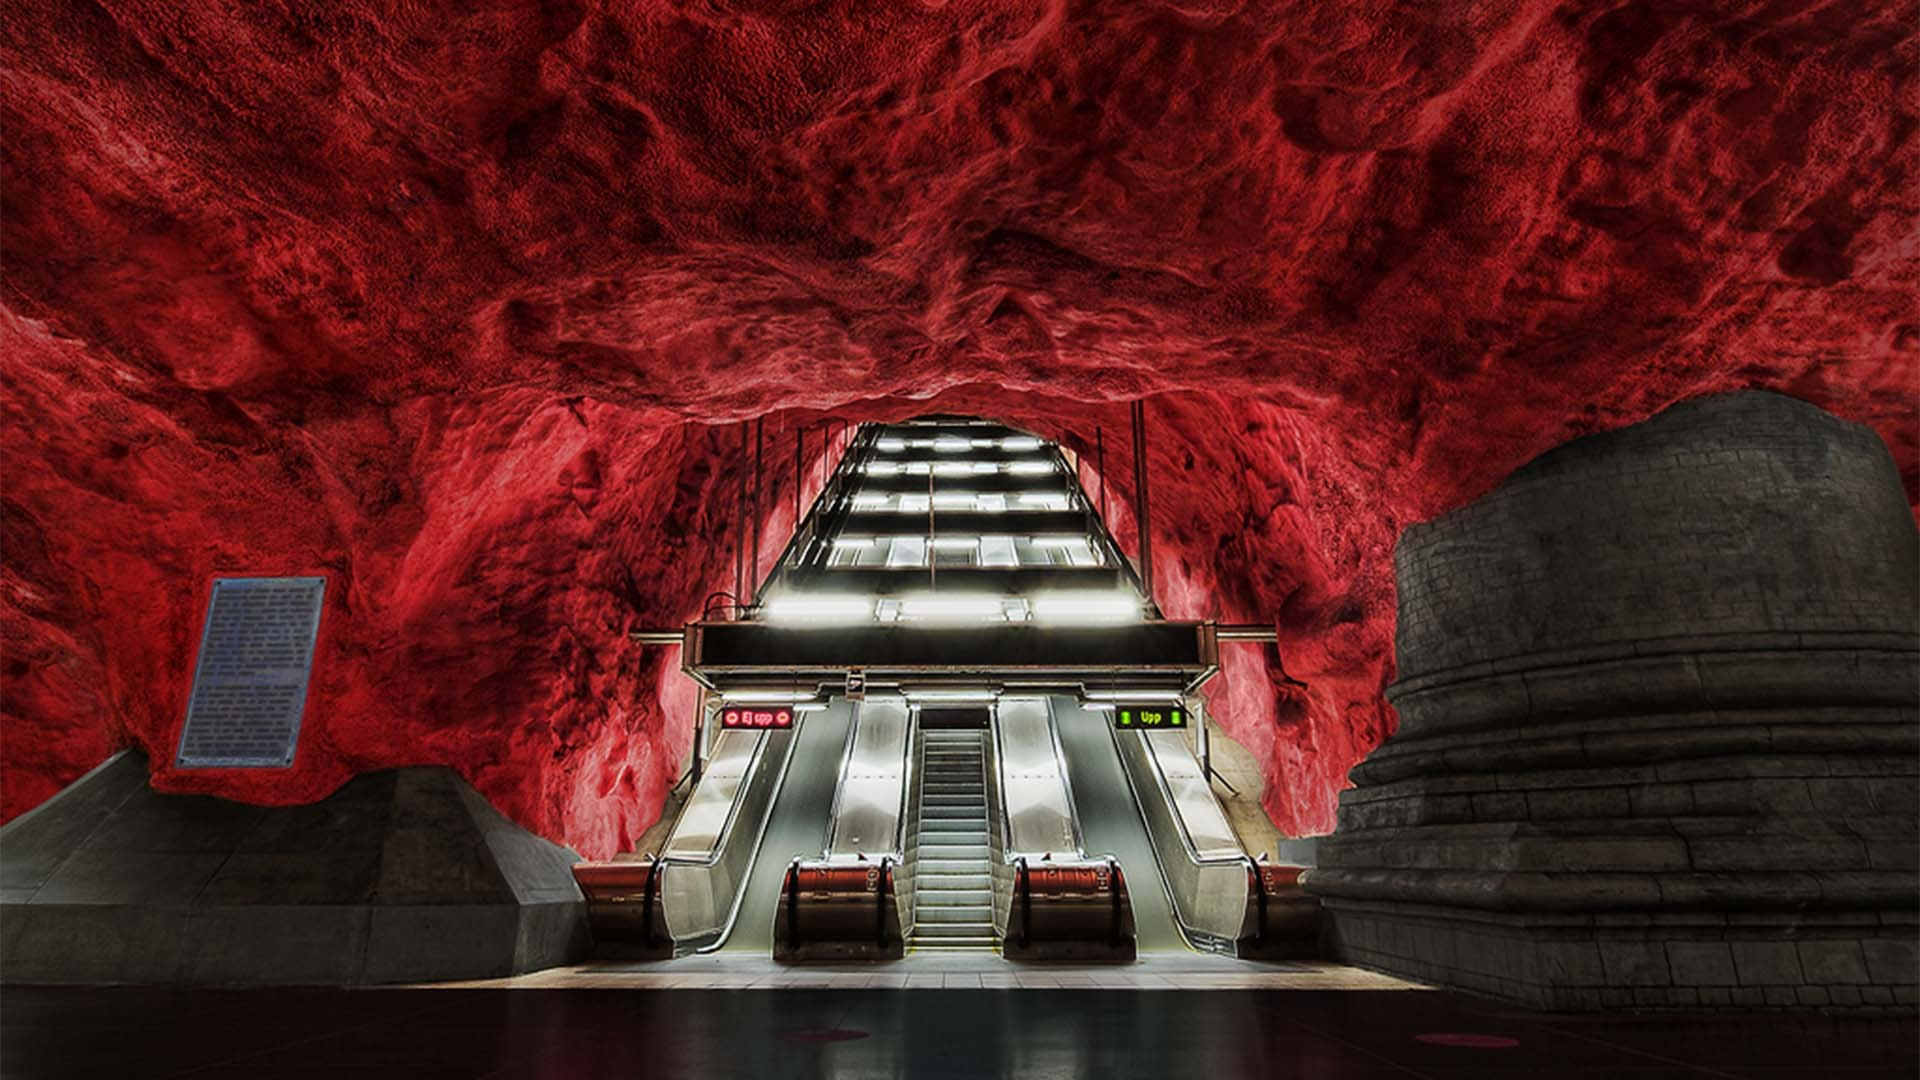 Red painted mural at Solna Centrum metro station, Stockholm